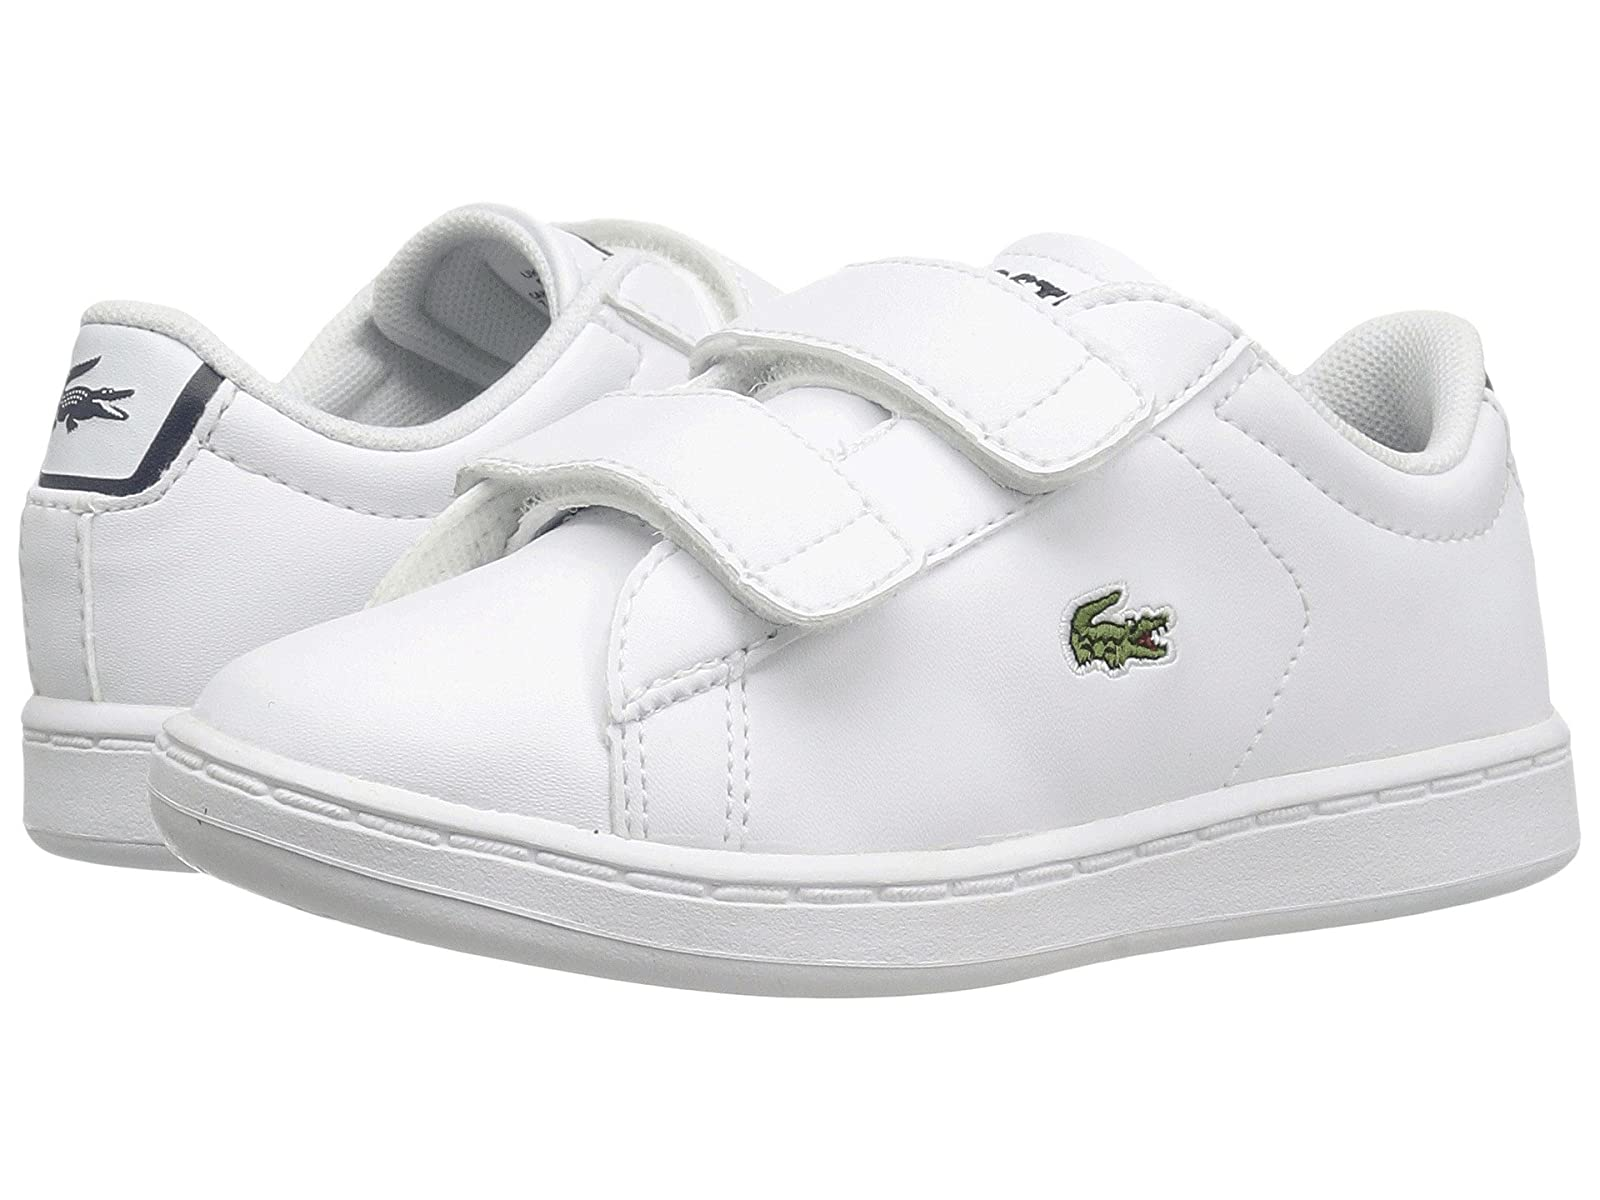 Lacoste Kids Carnaby Evo H&L (Toddler/Little Kid)Atmospheric grades have affordable shoes